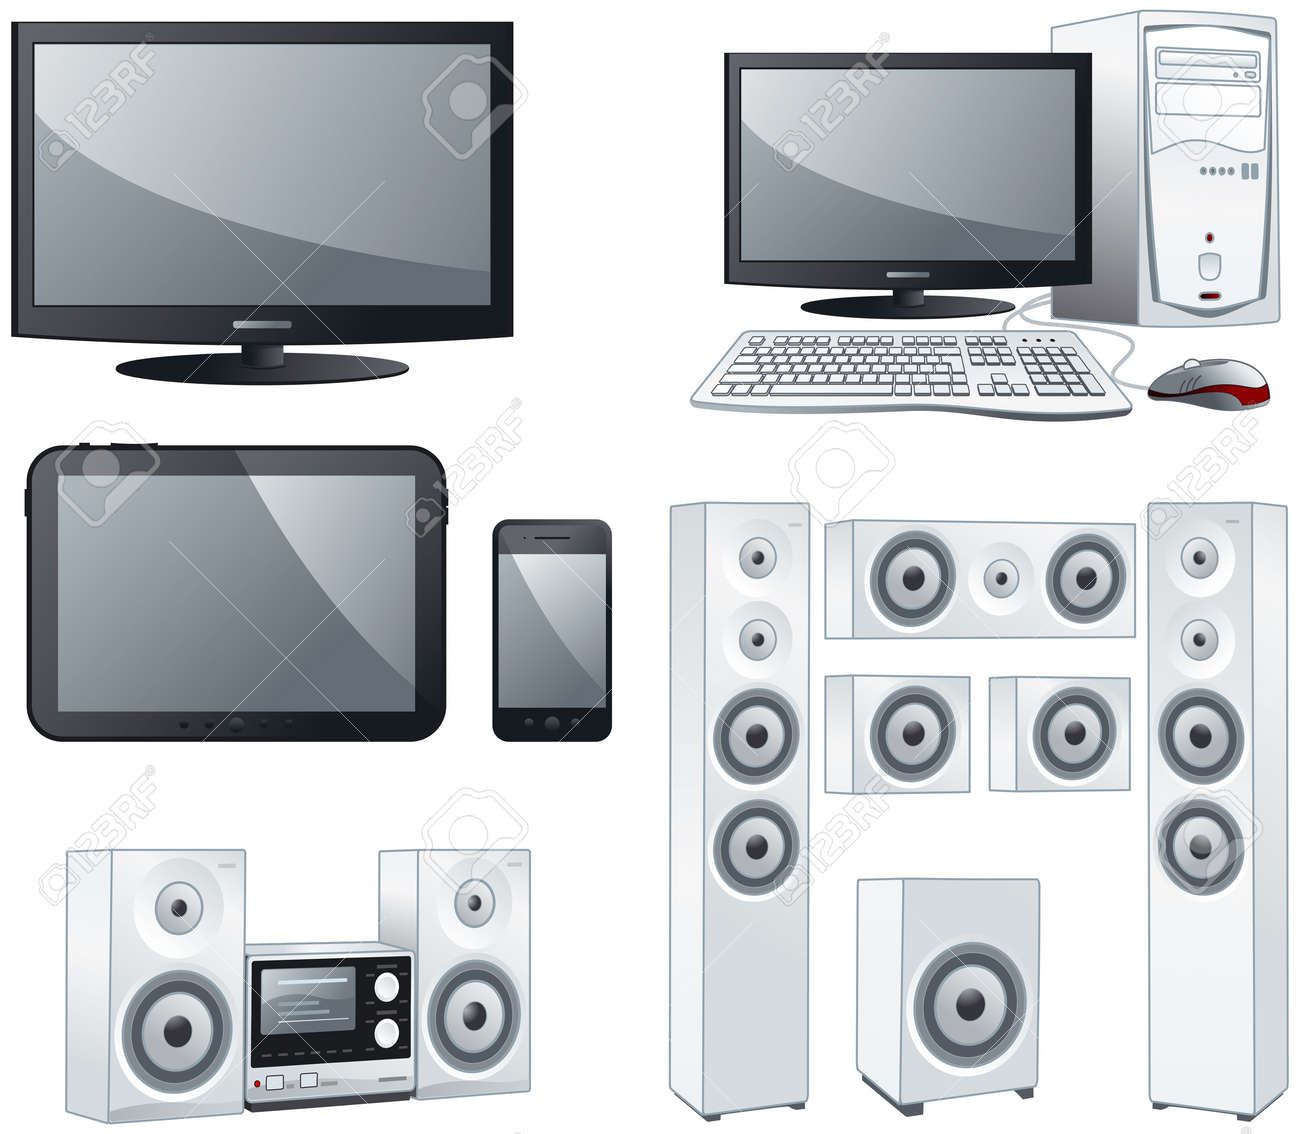 Electronic devices : TV, computer, tablet, smartphone, sound systems objects illustration set - 19695276